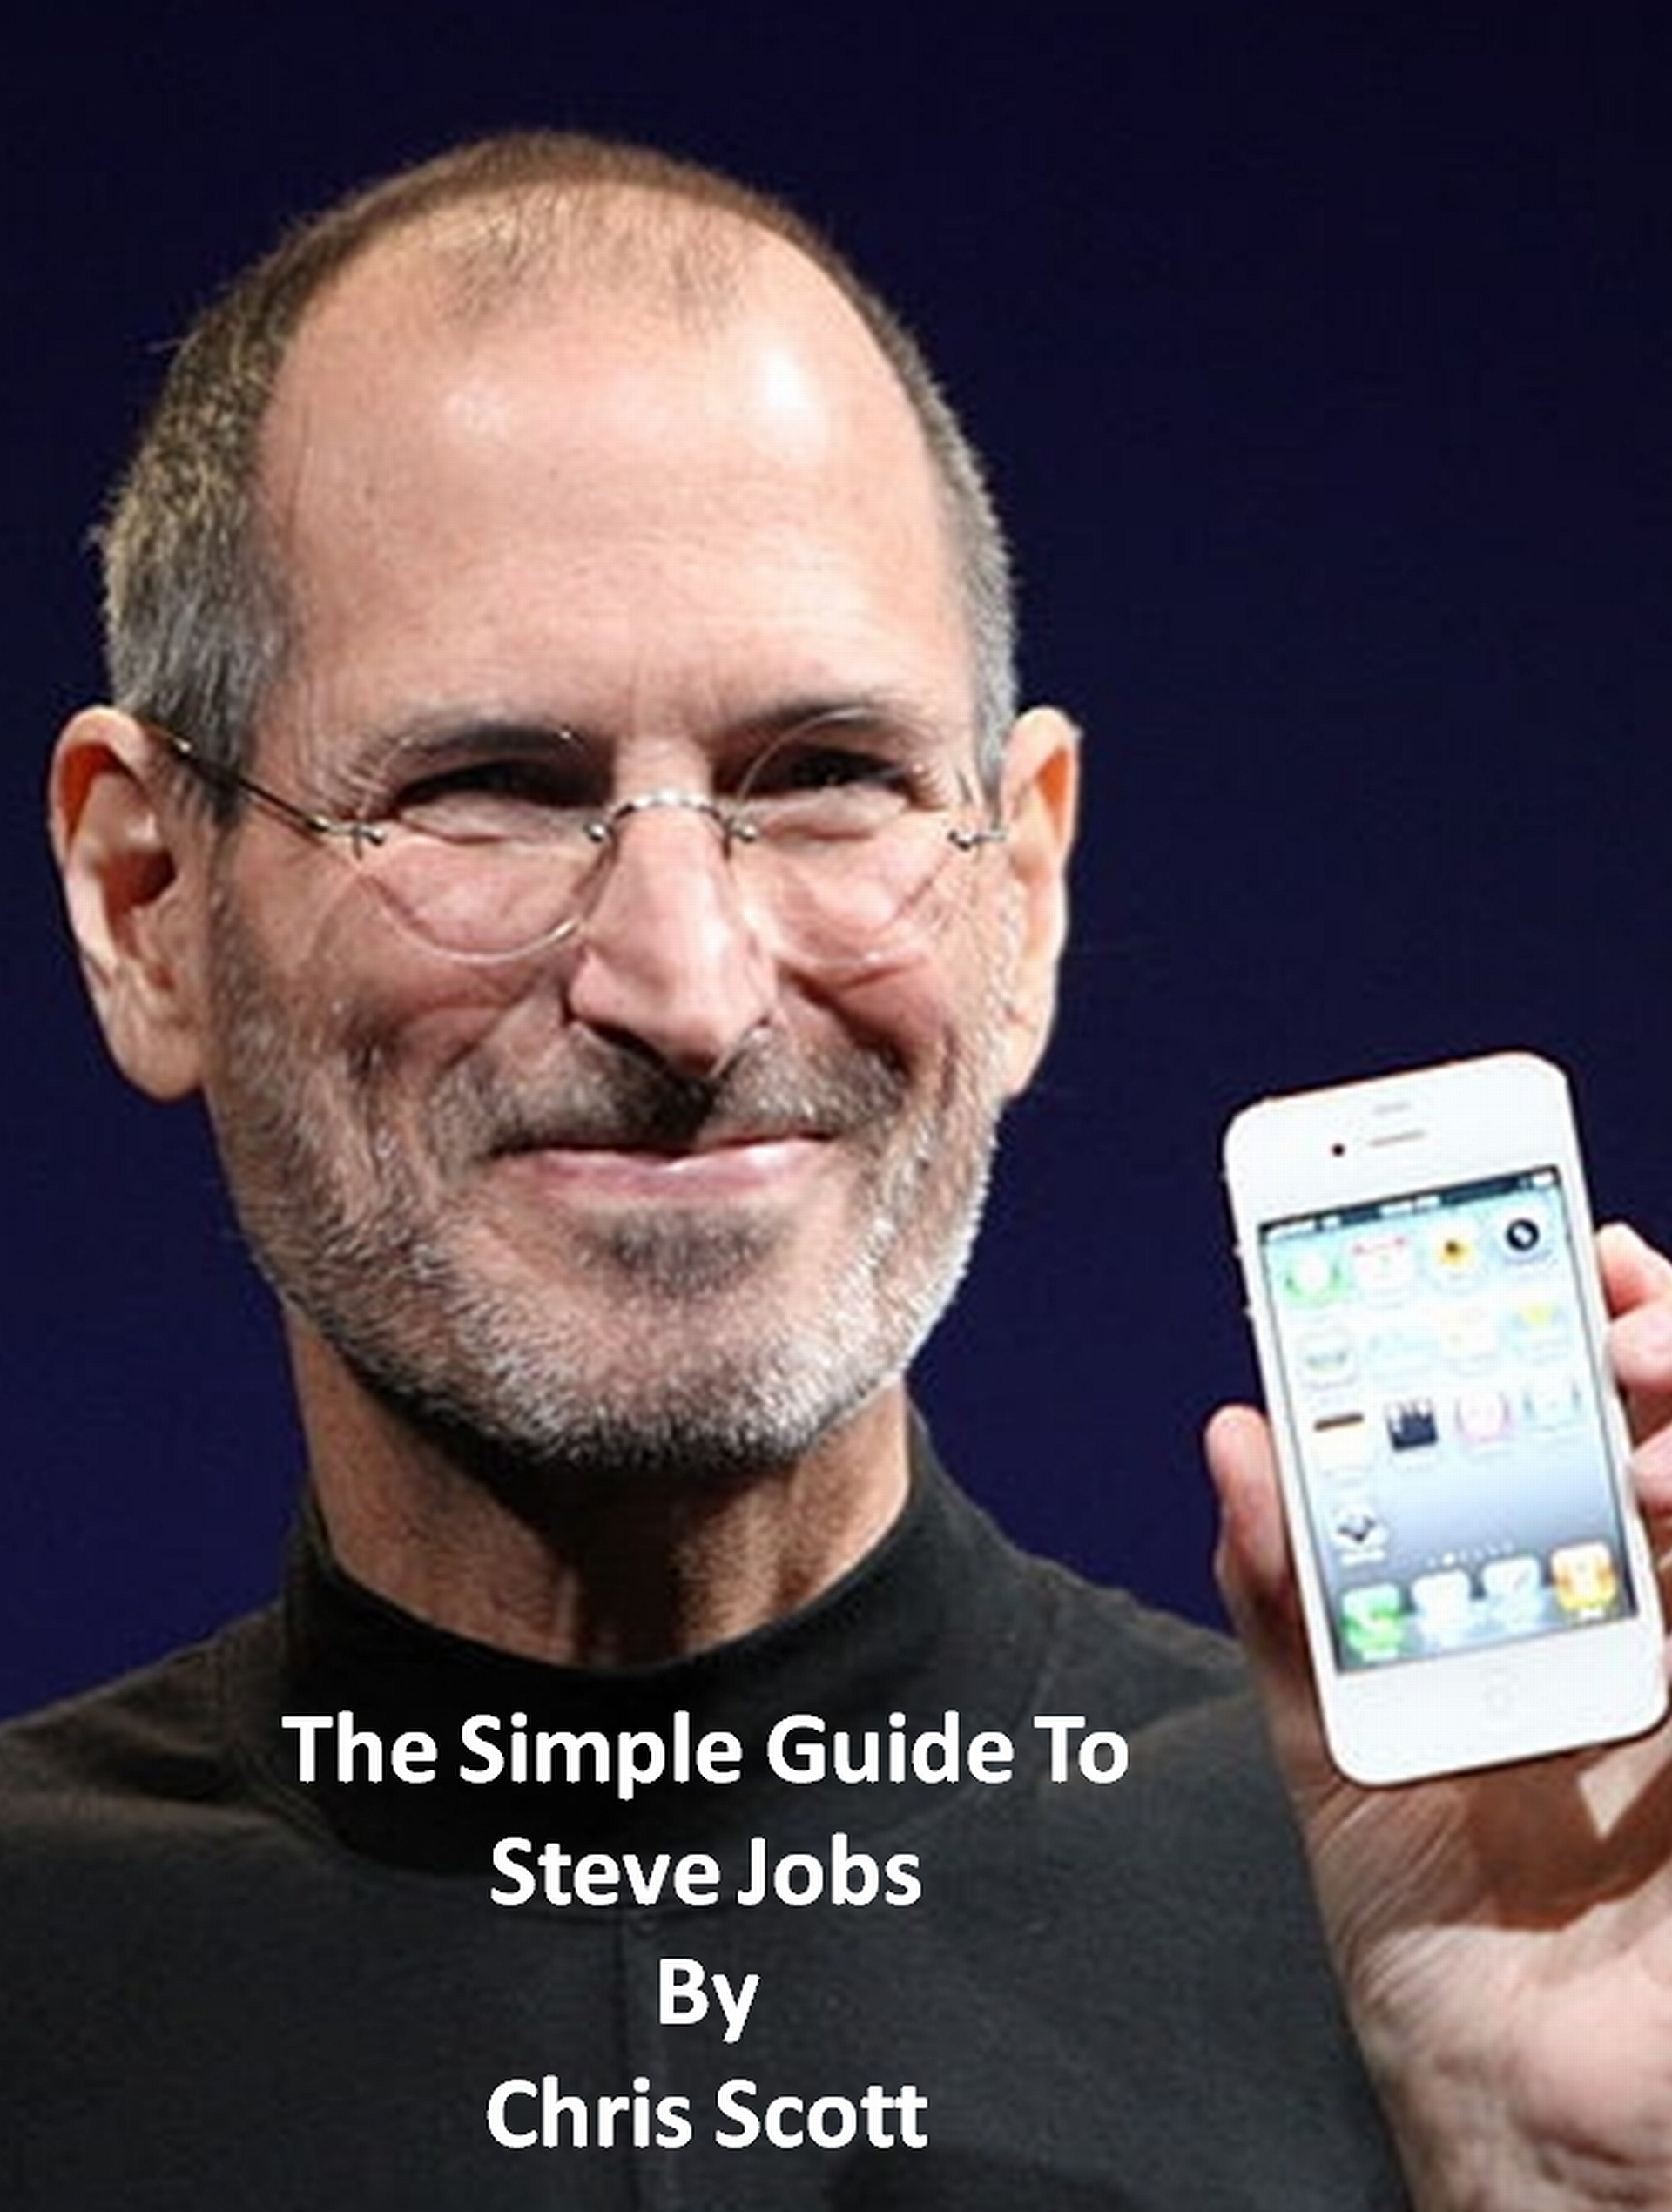 The Simple Guide To Steve Jobs By: Chris Scott